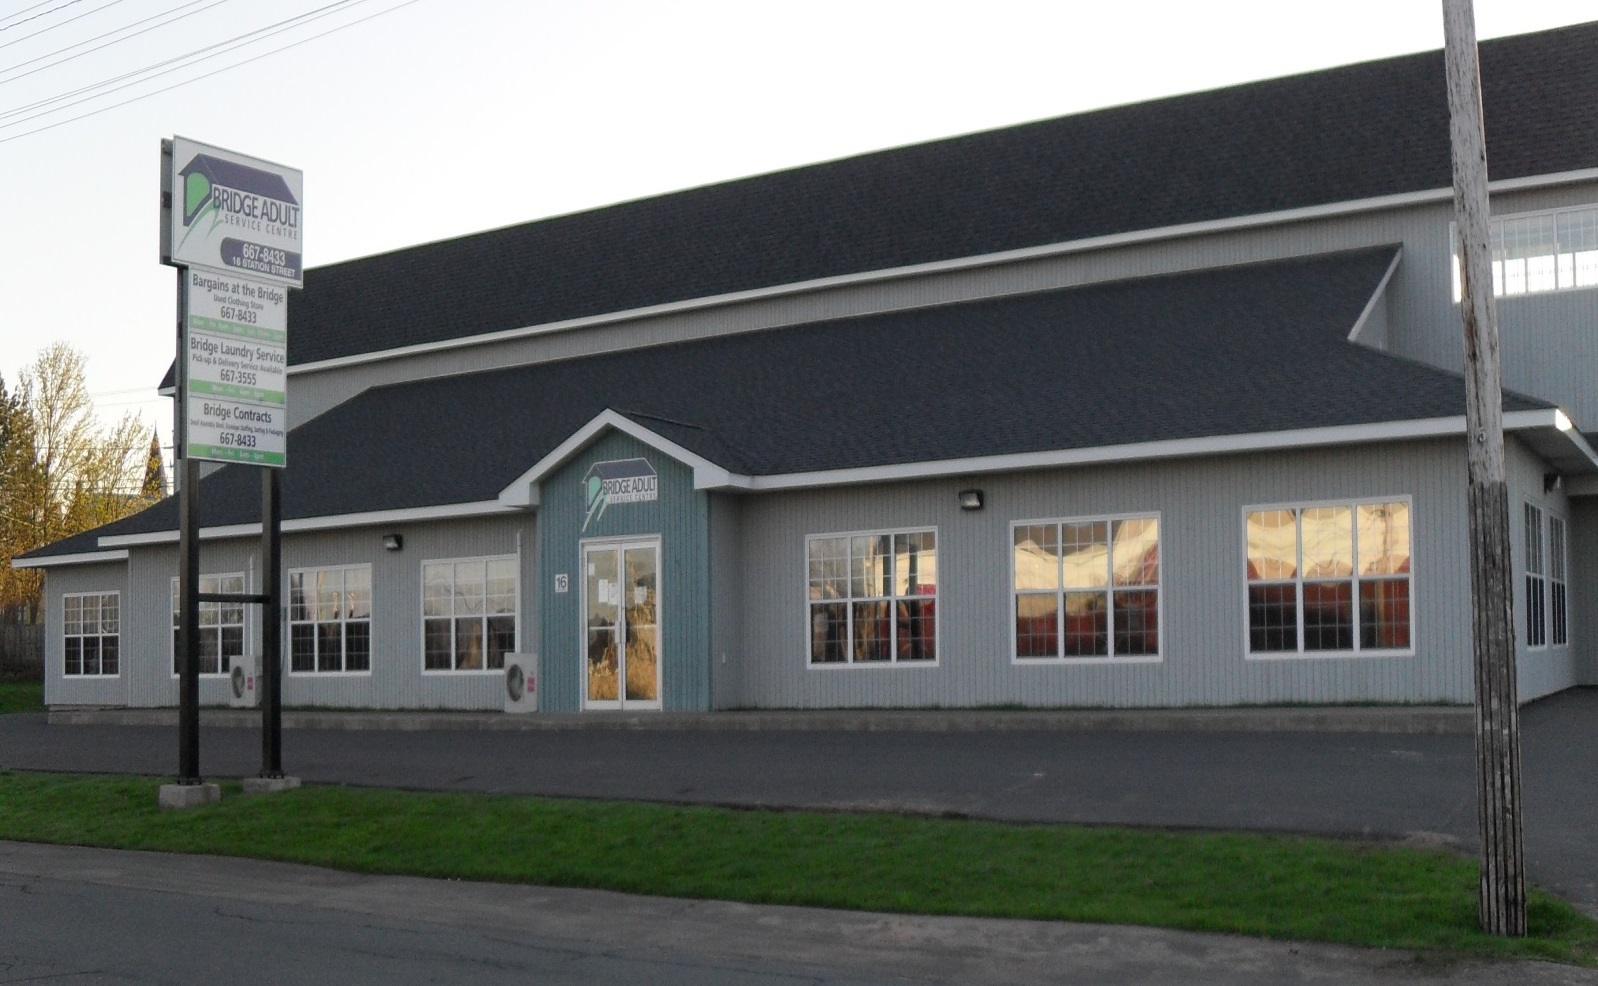 Bridge Adult Service Centre